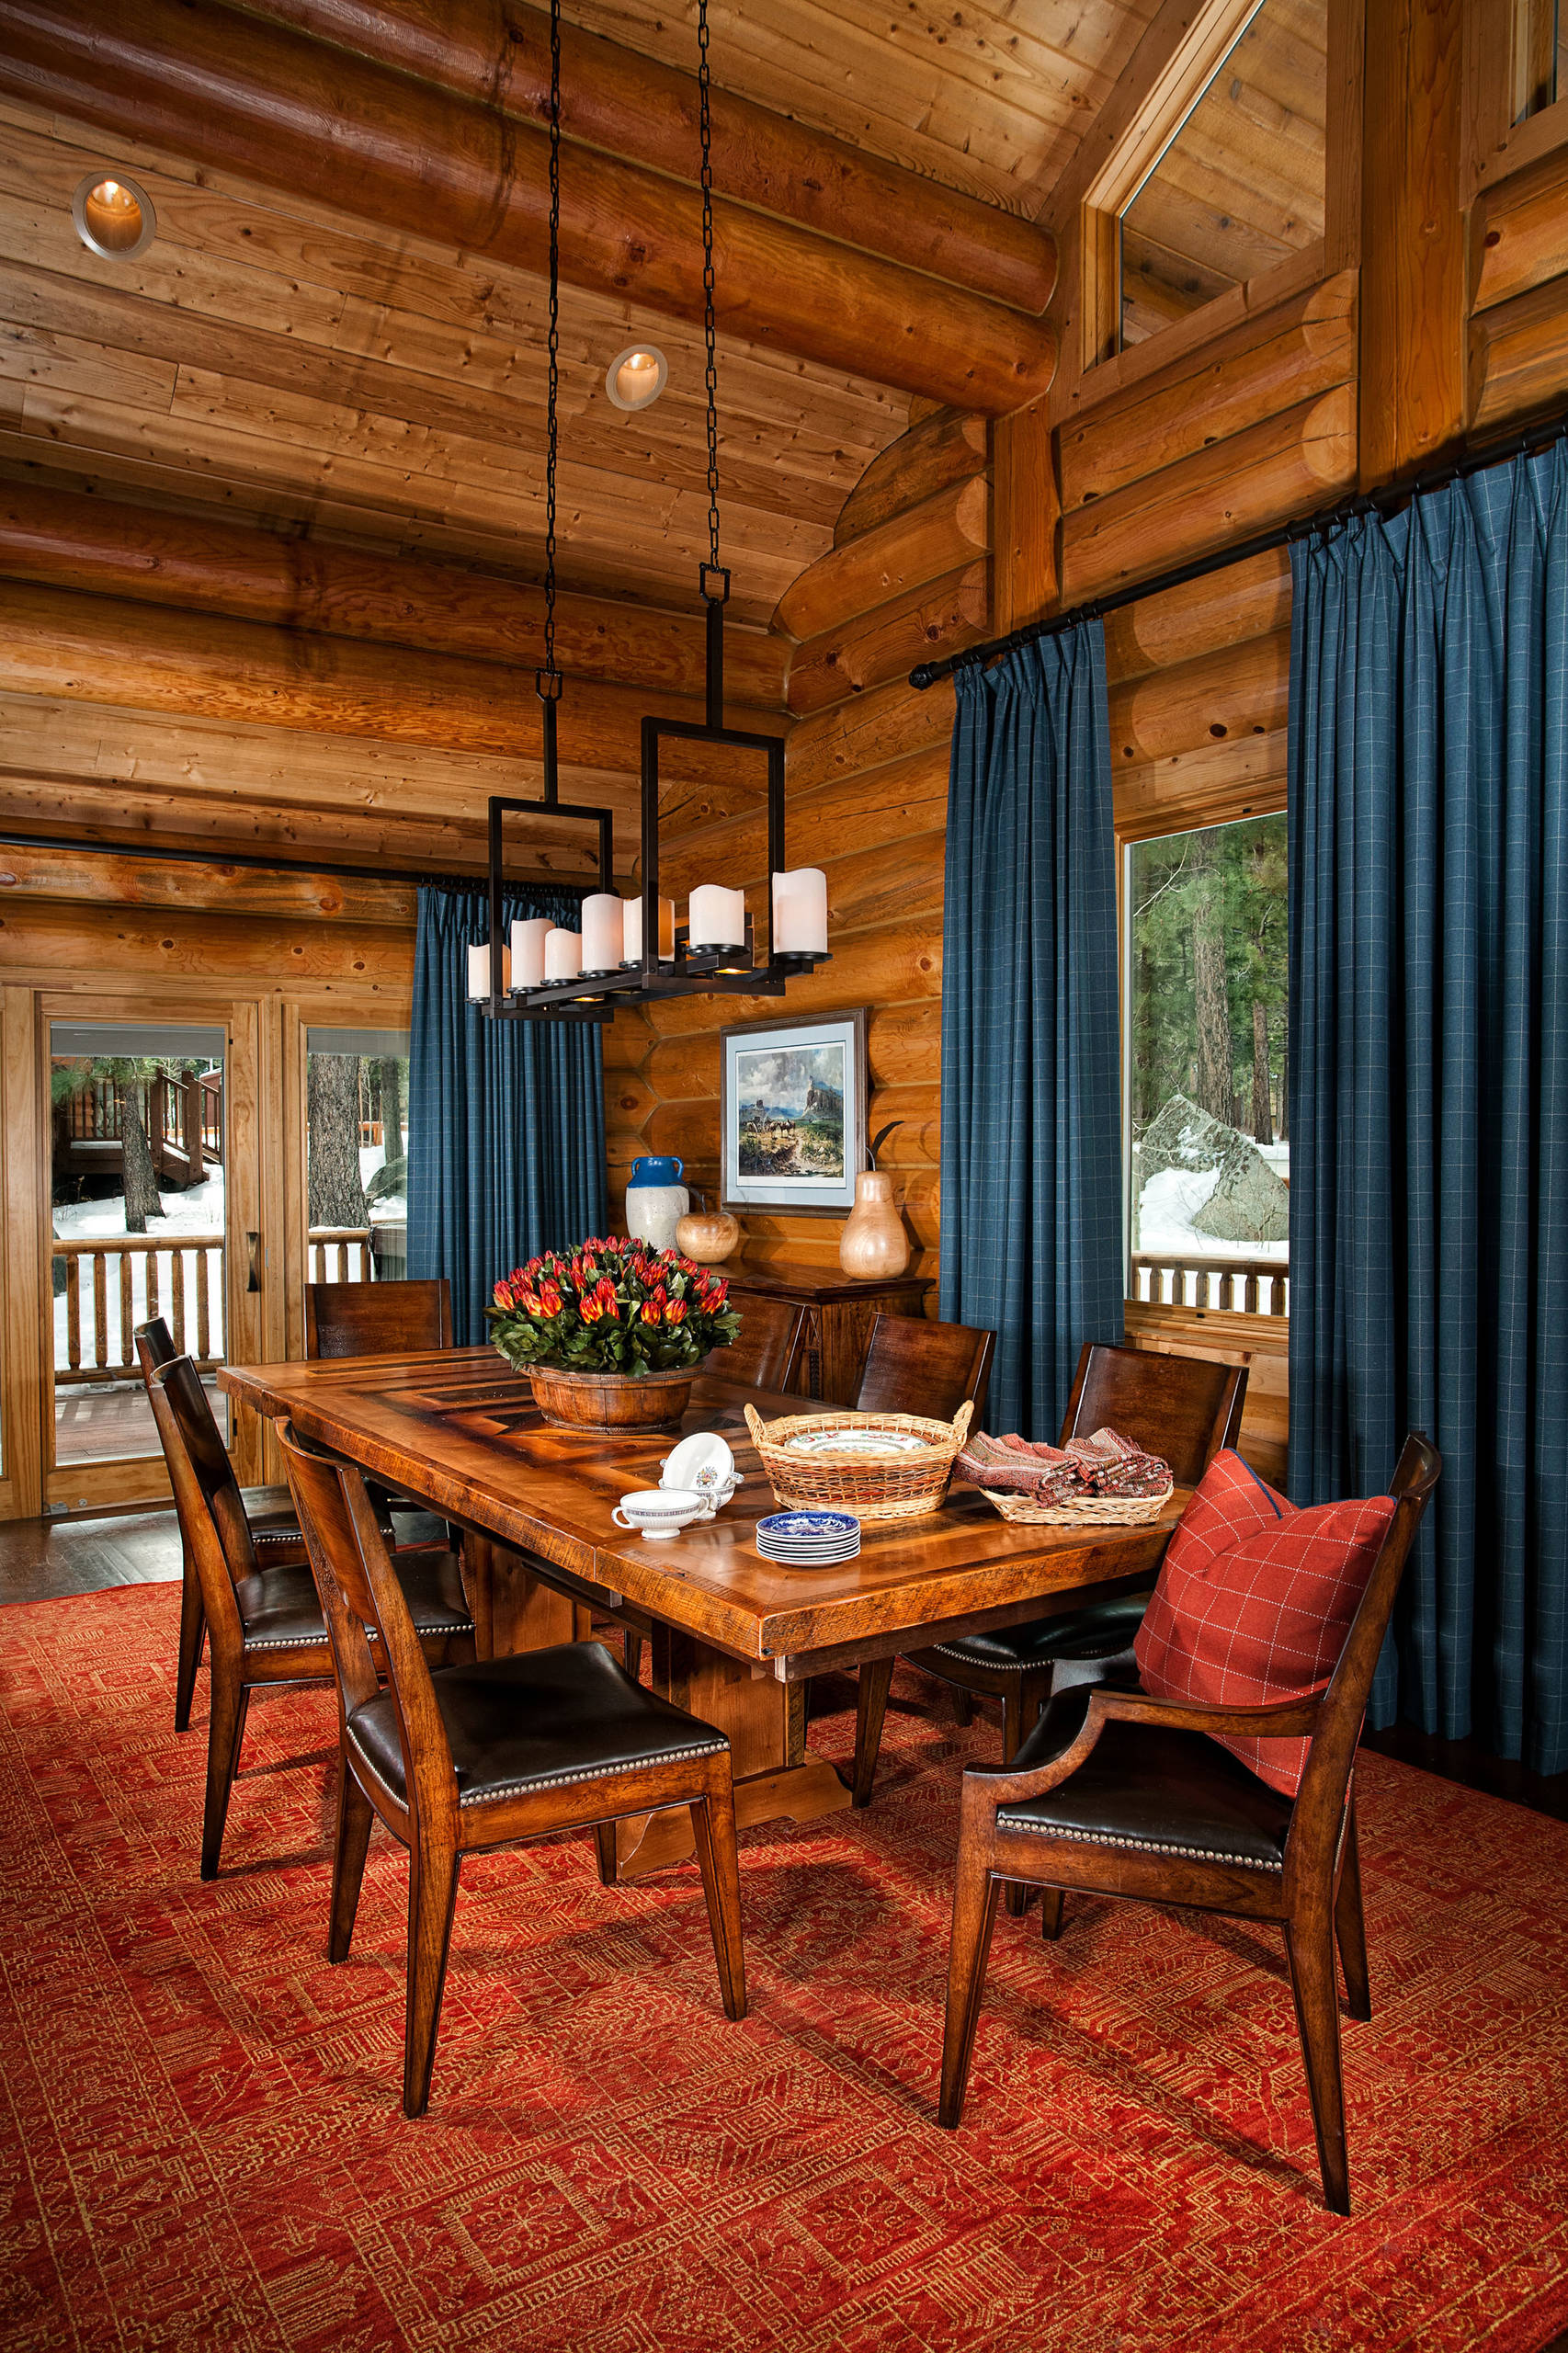 traditional living room design ideas 2016 modern home interior 16 majestic rustic dining designs you can't miss out